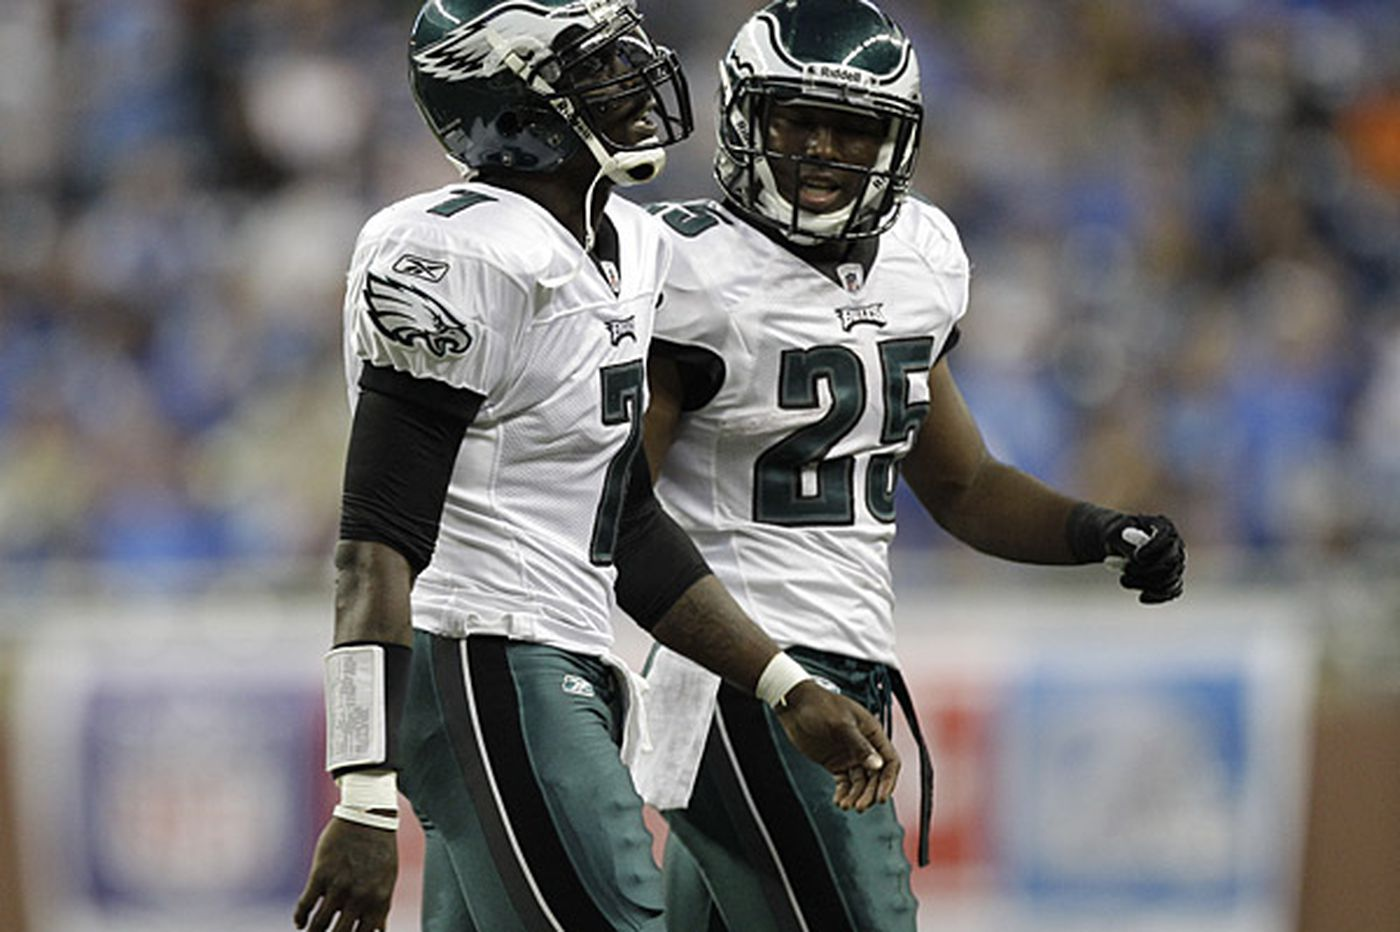 Eagles Notes: Eagles Michael Vick and LeSean McCoy recovering from concussions